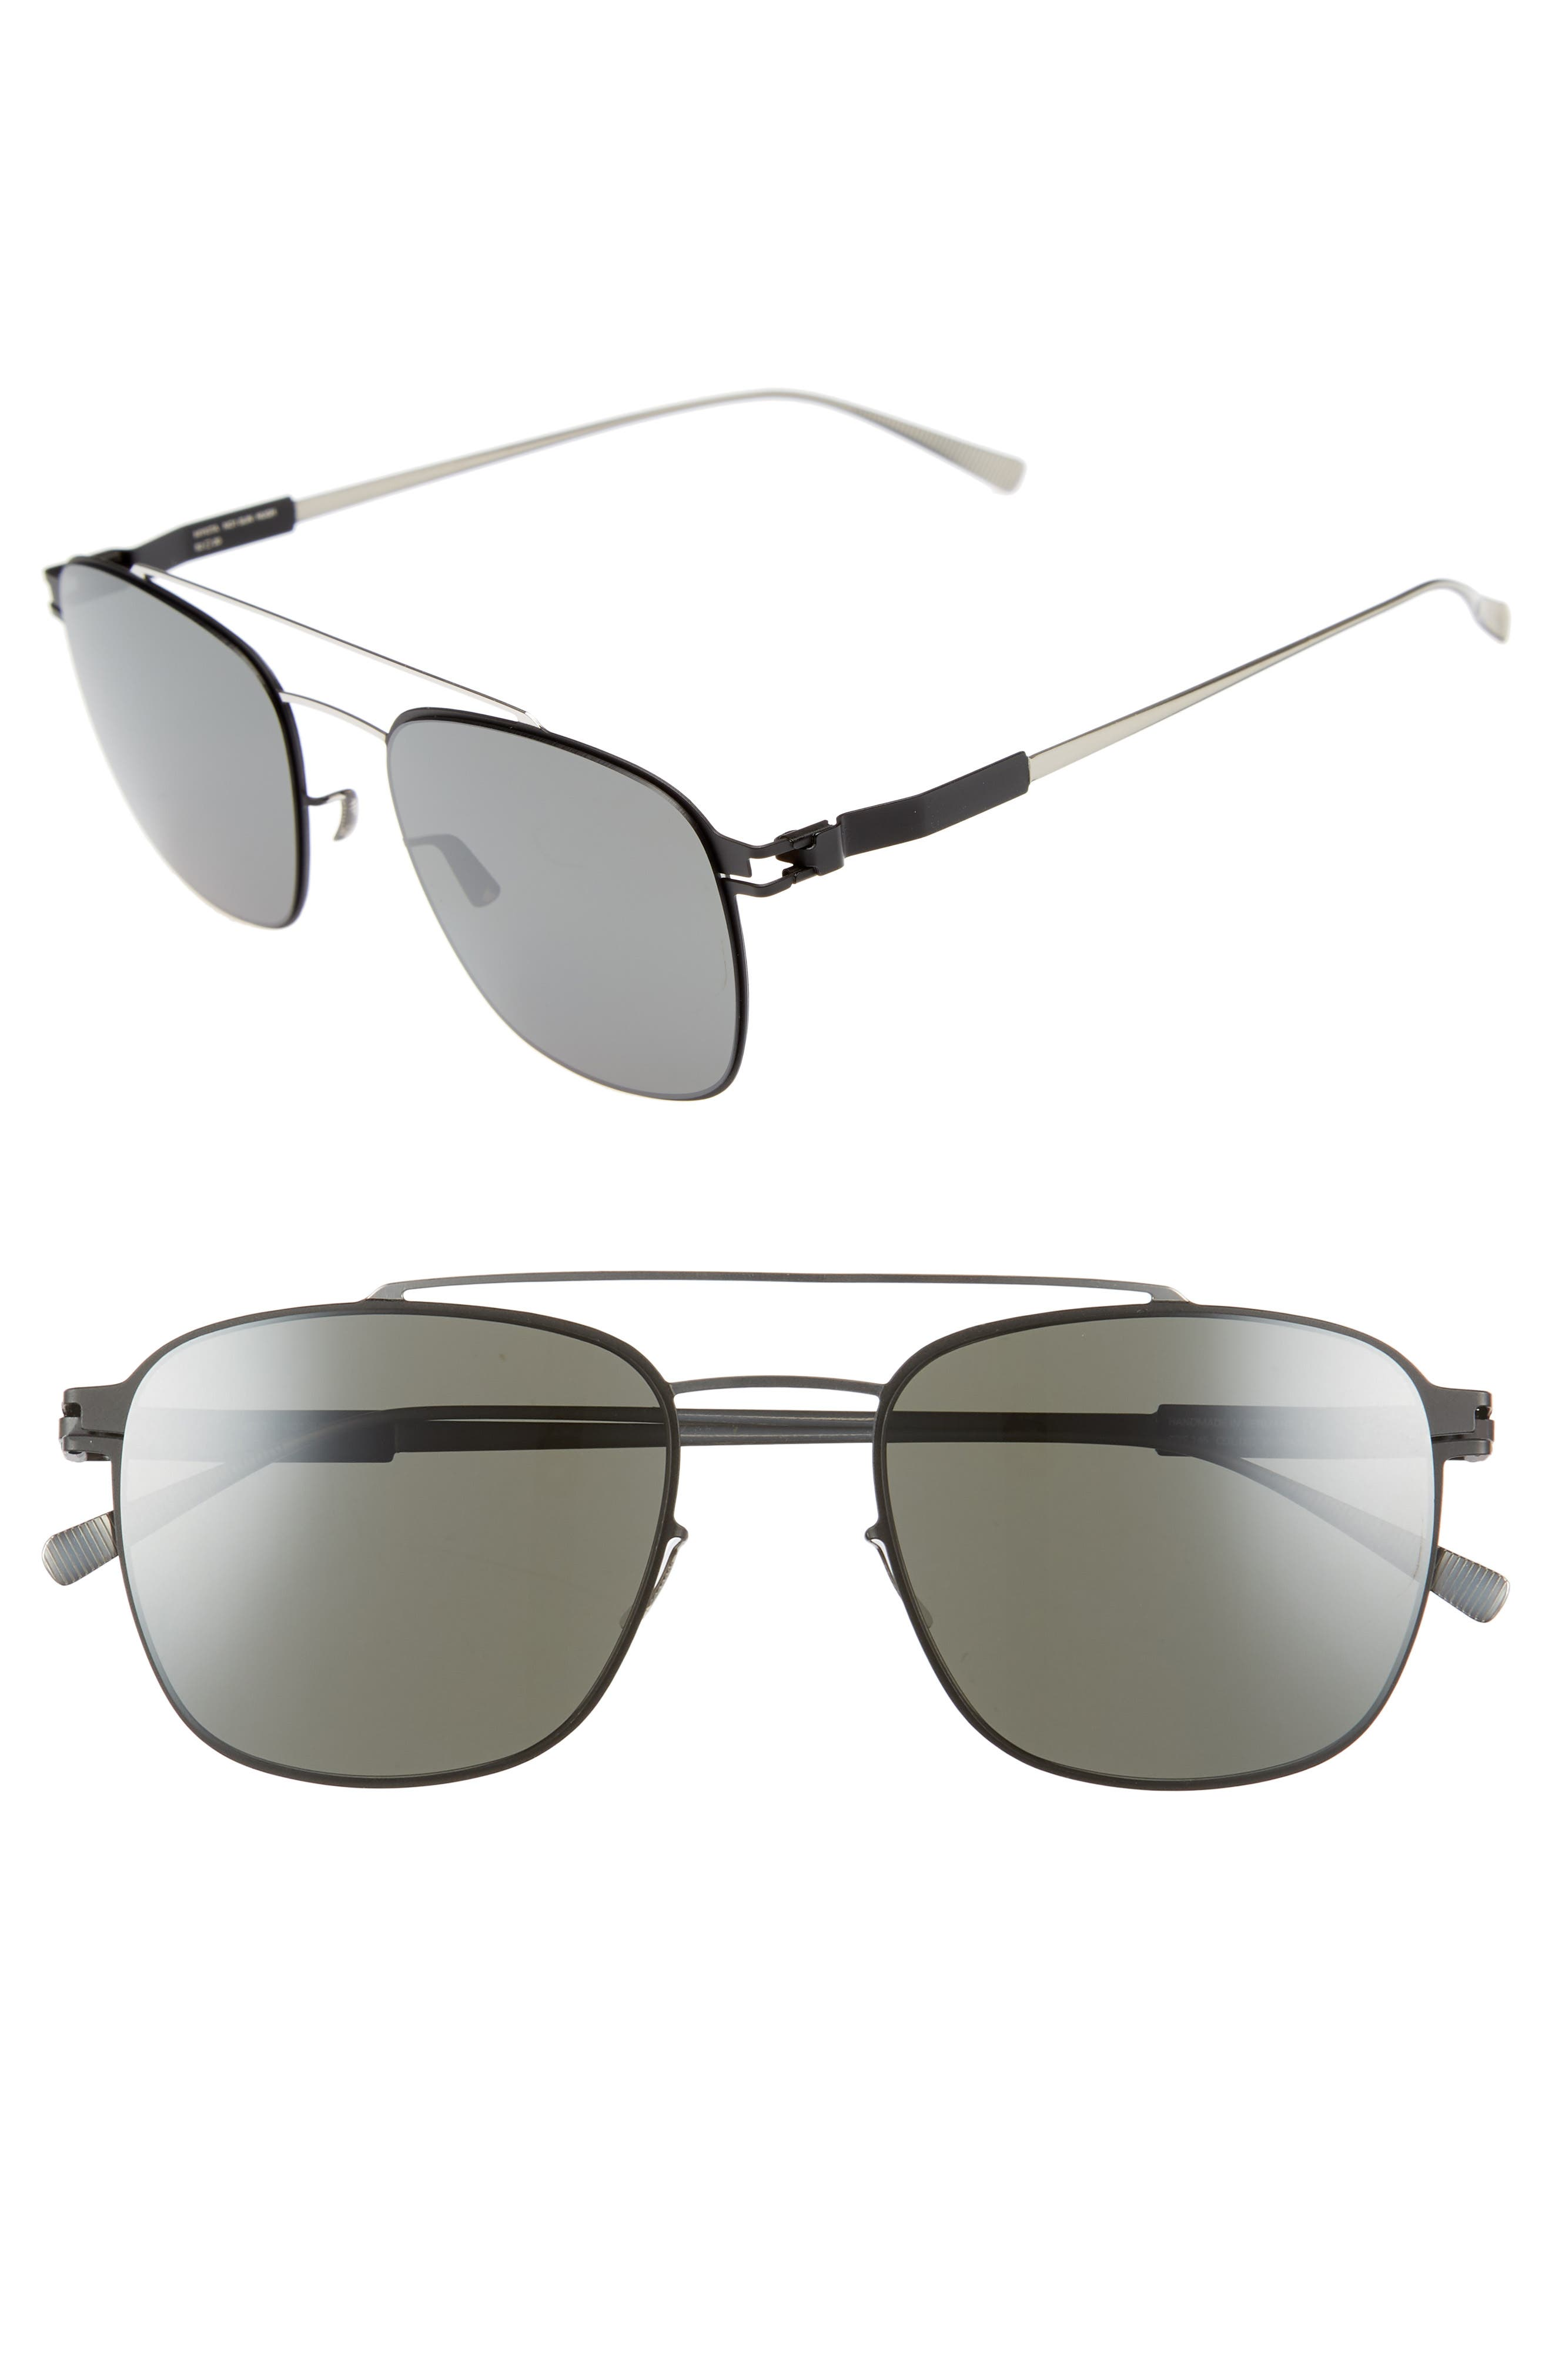 Hugh 52mm Mirrored Sunglasses,                             Main thumbnail 1, color,